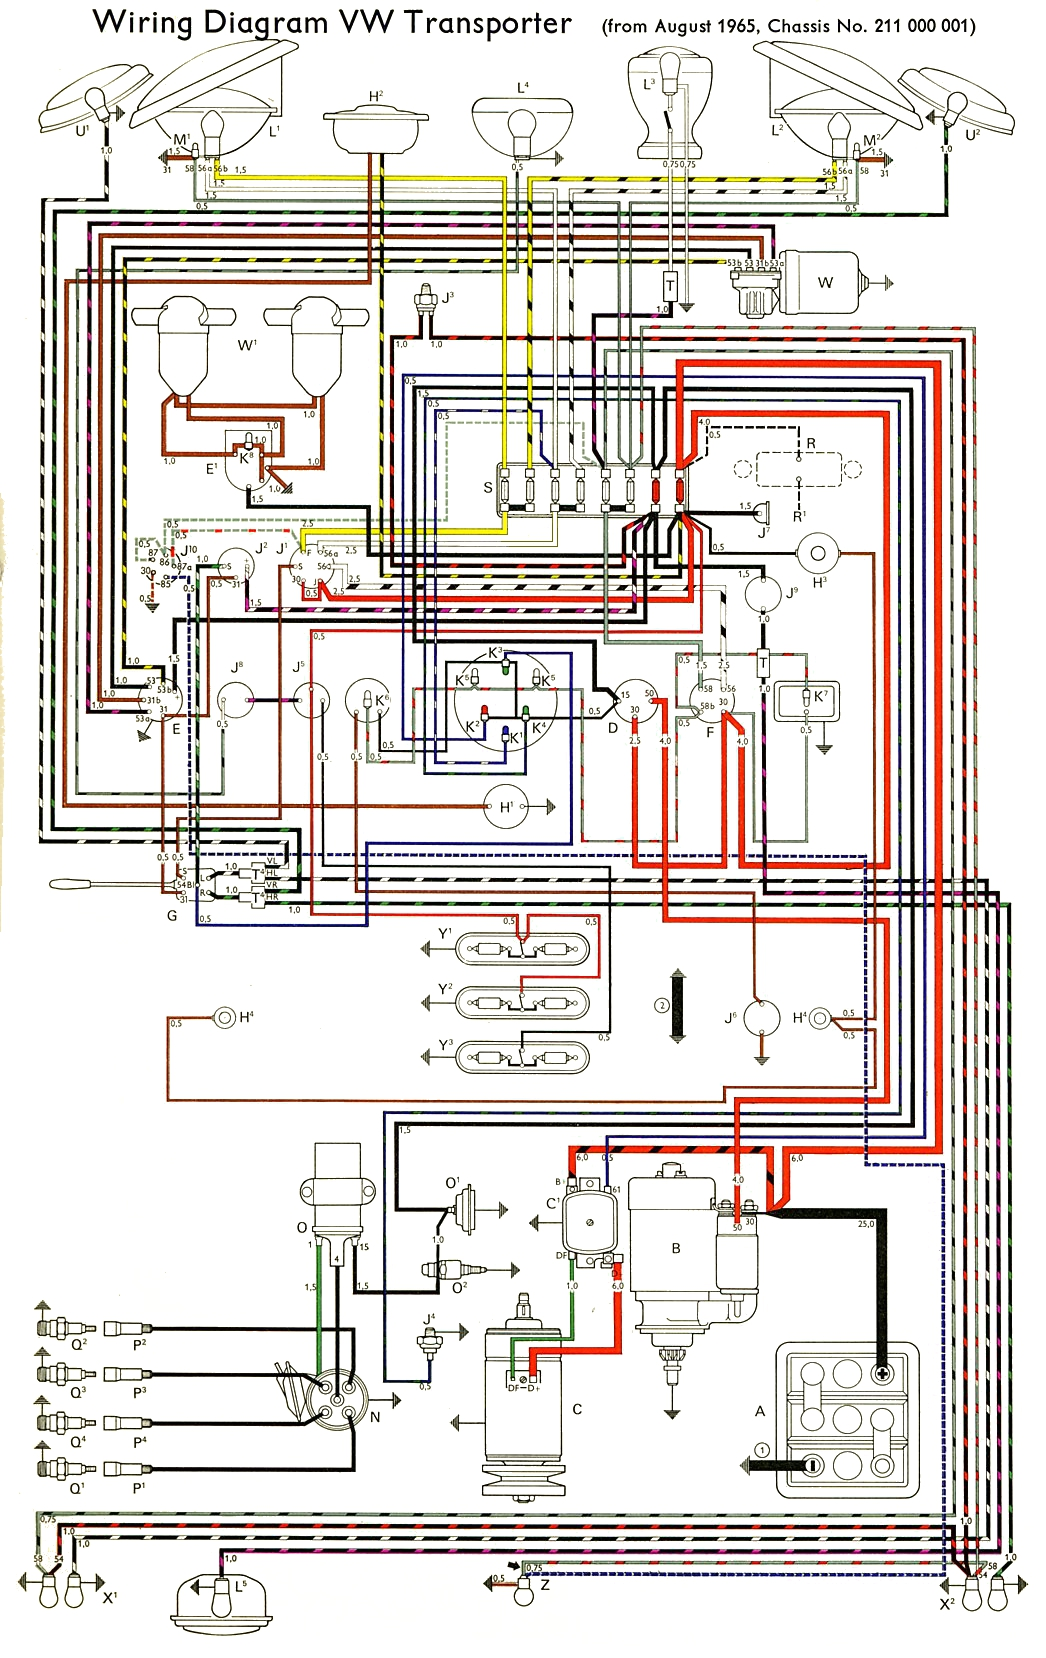 Vw Headlight Switch Wiring Diagram : Triumph spitfire wiring diagram free engine